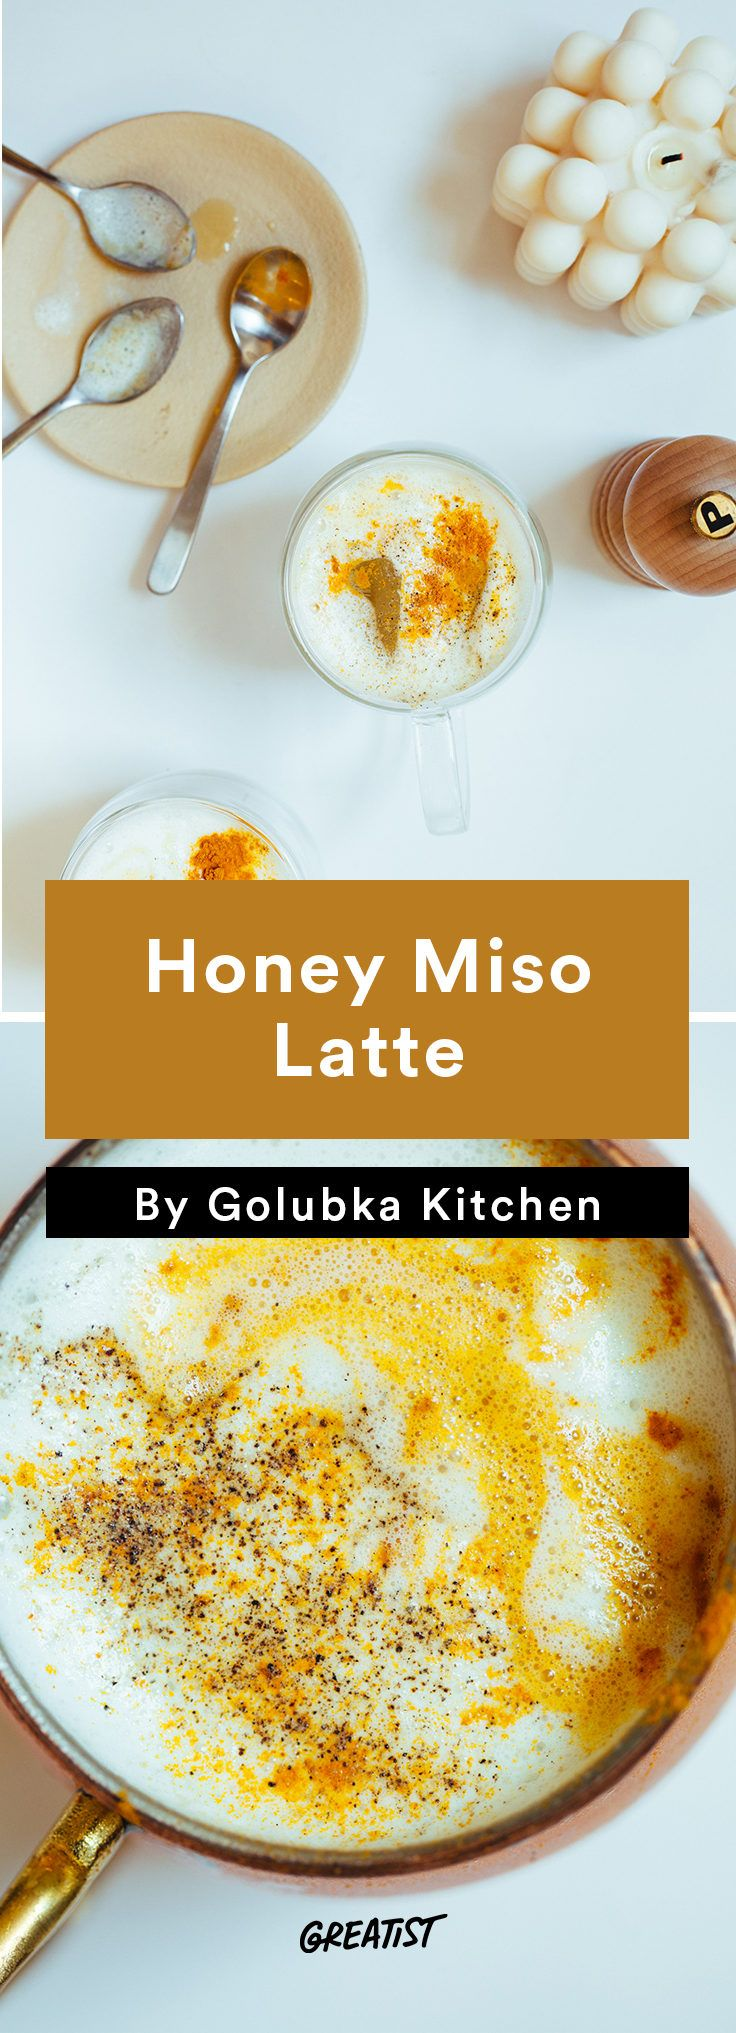 5. Honey and Miso Latte #warm #drinks #recipes http://greatist.stfi.re/eat/warm-drink-recipes-better-than-a-pumpkin-spice-latte